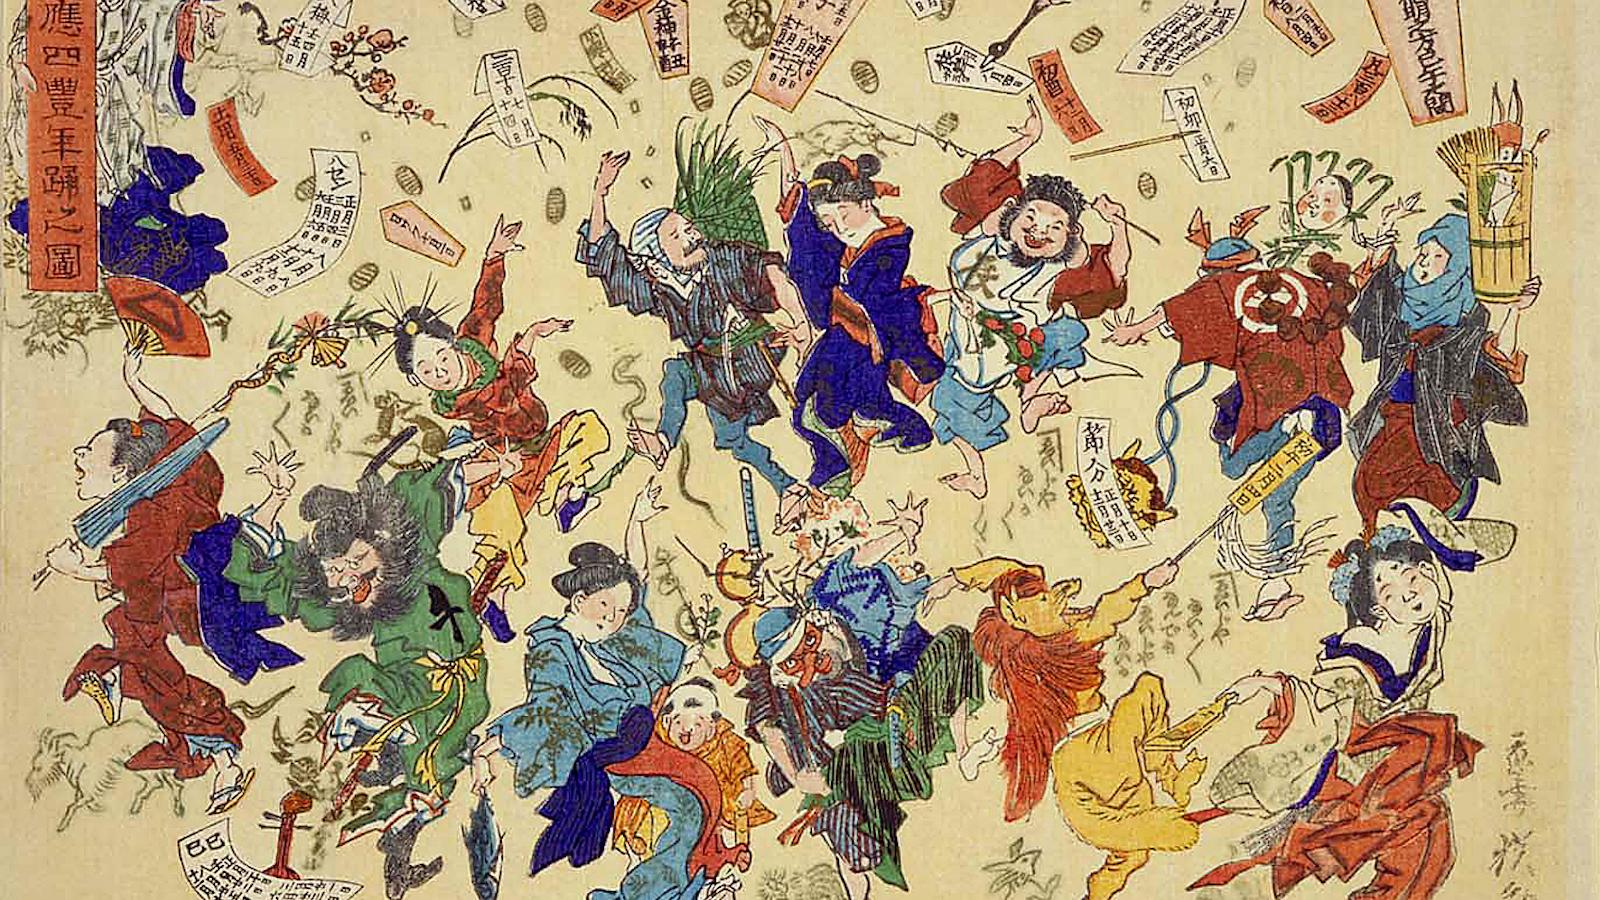 Painting of Edo carnival festivities, nineteenth-century Japan